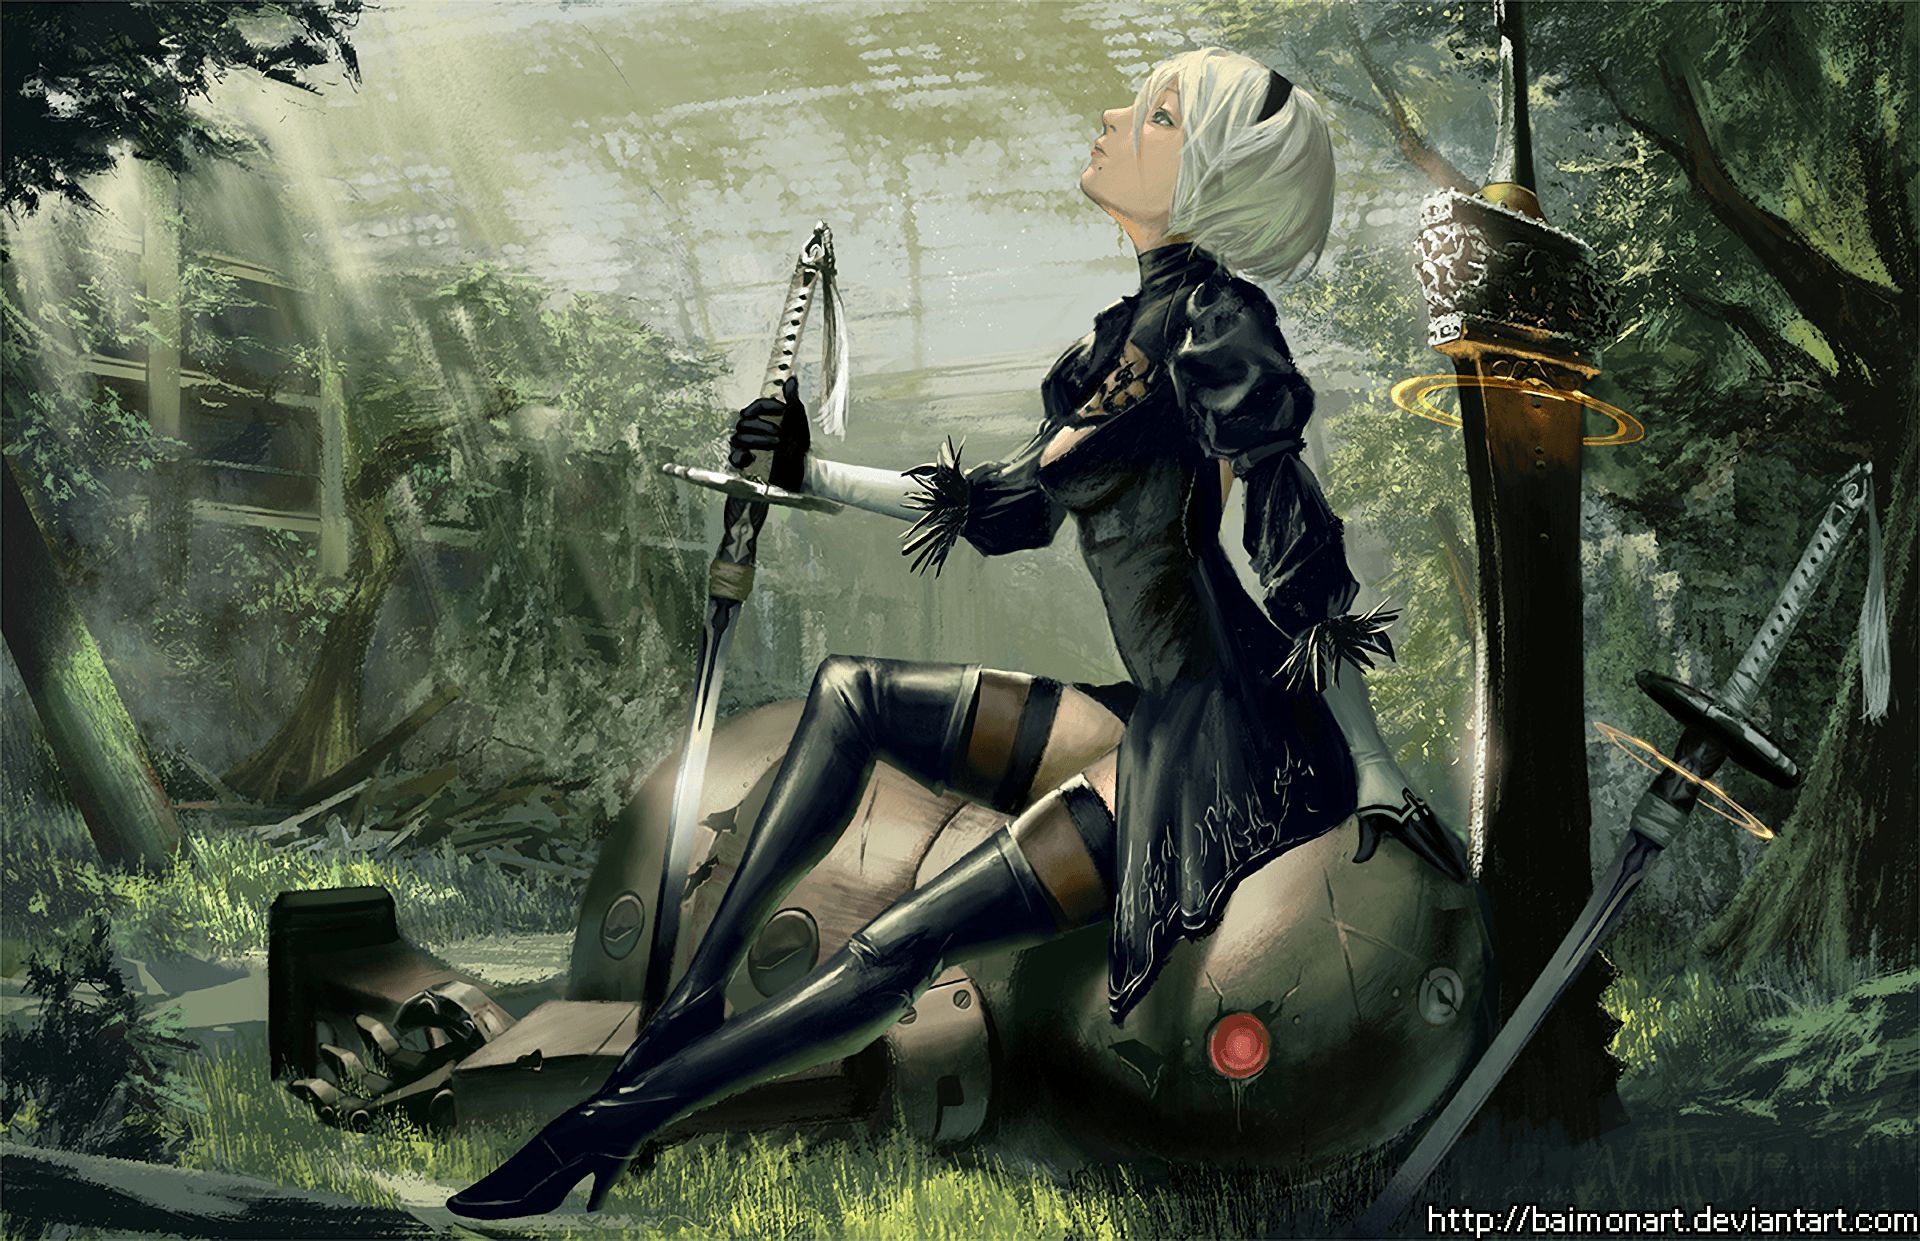 Nier Automata Fantasy Game Art Full Hd Wallpaper: Nier: Automata Wallpapers